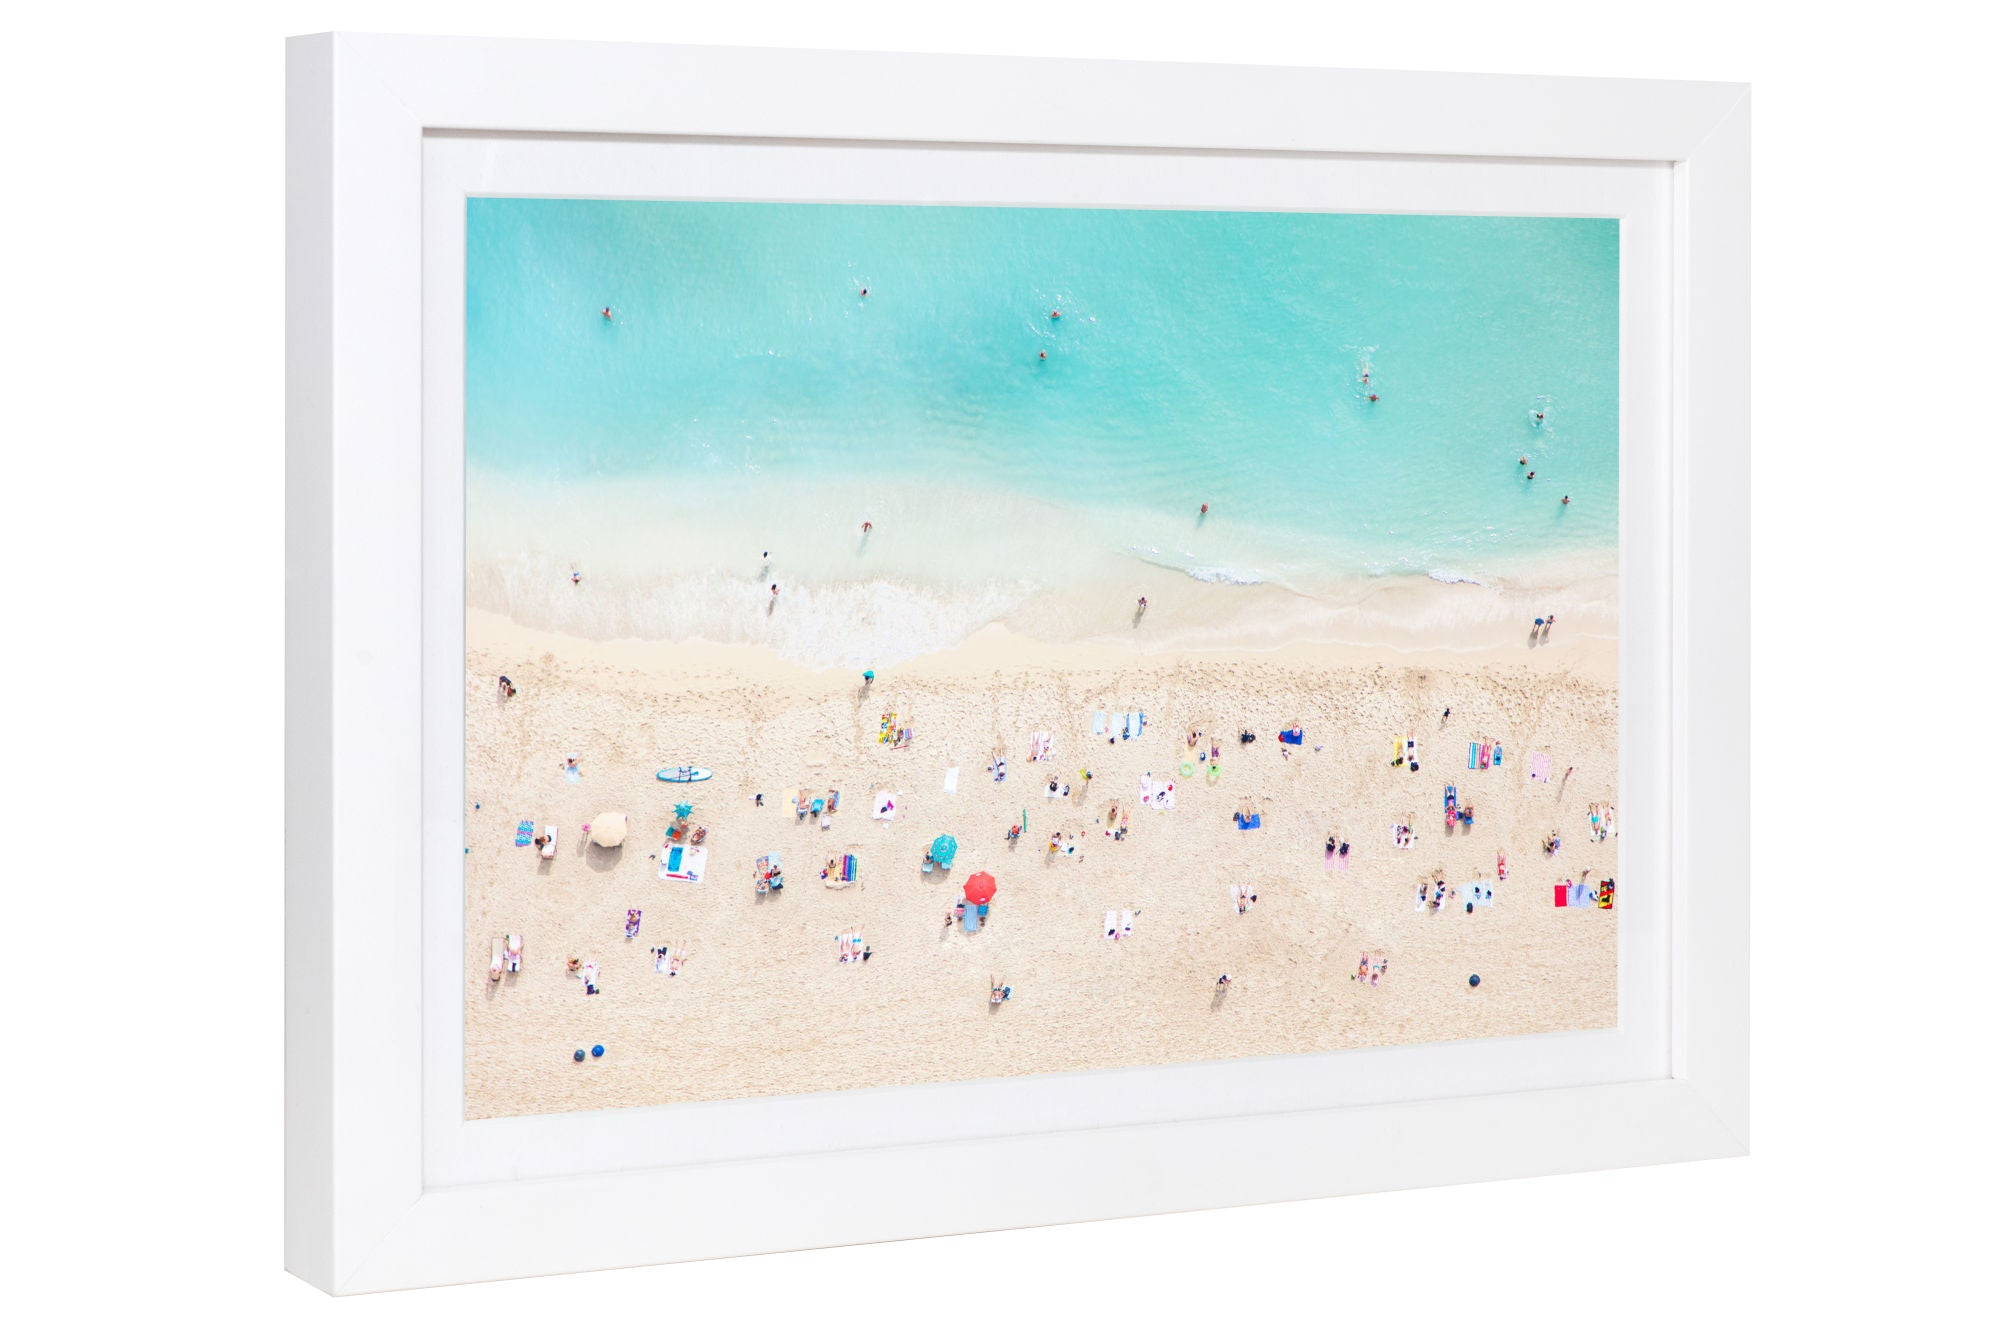 Gray Malin | Waikiki Beach Mini | Framed 15.5